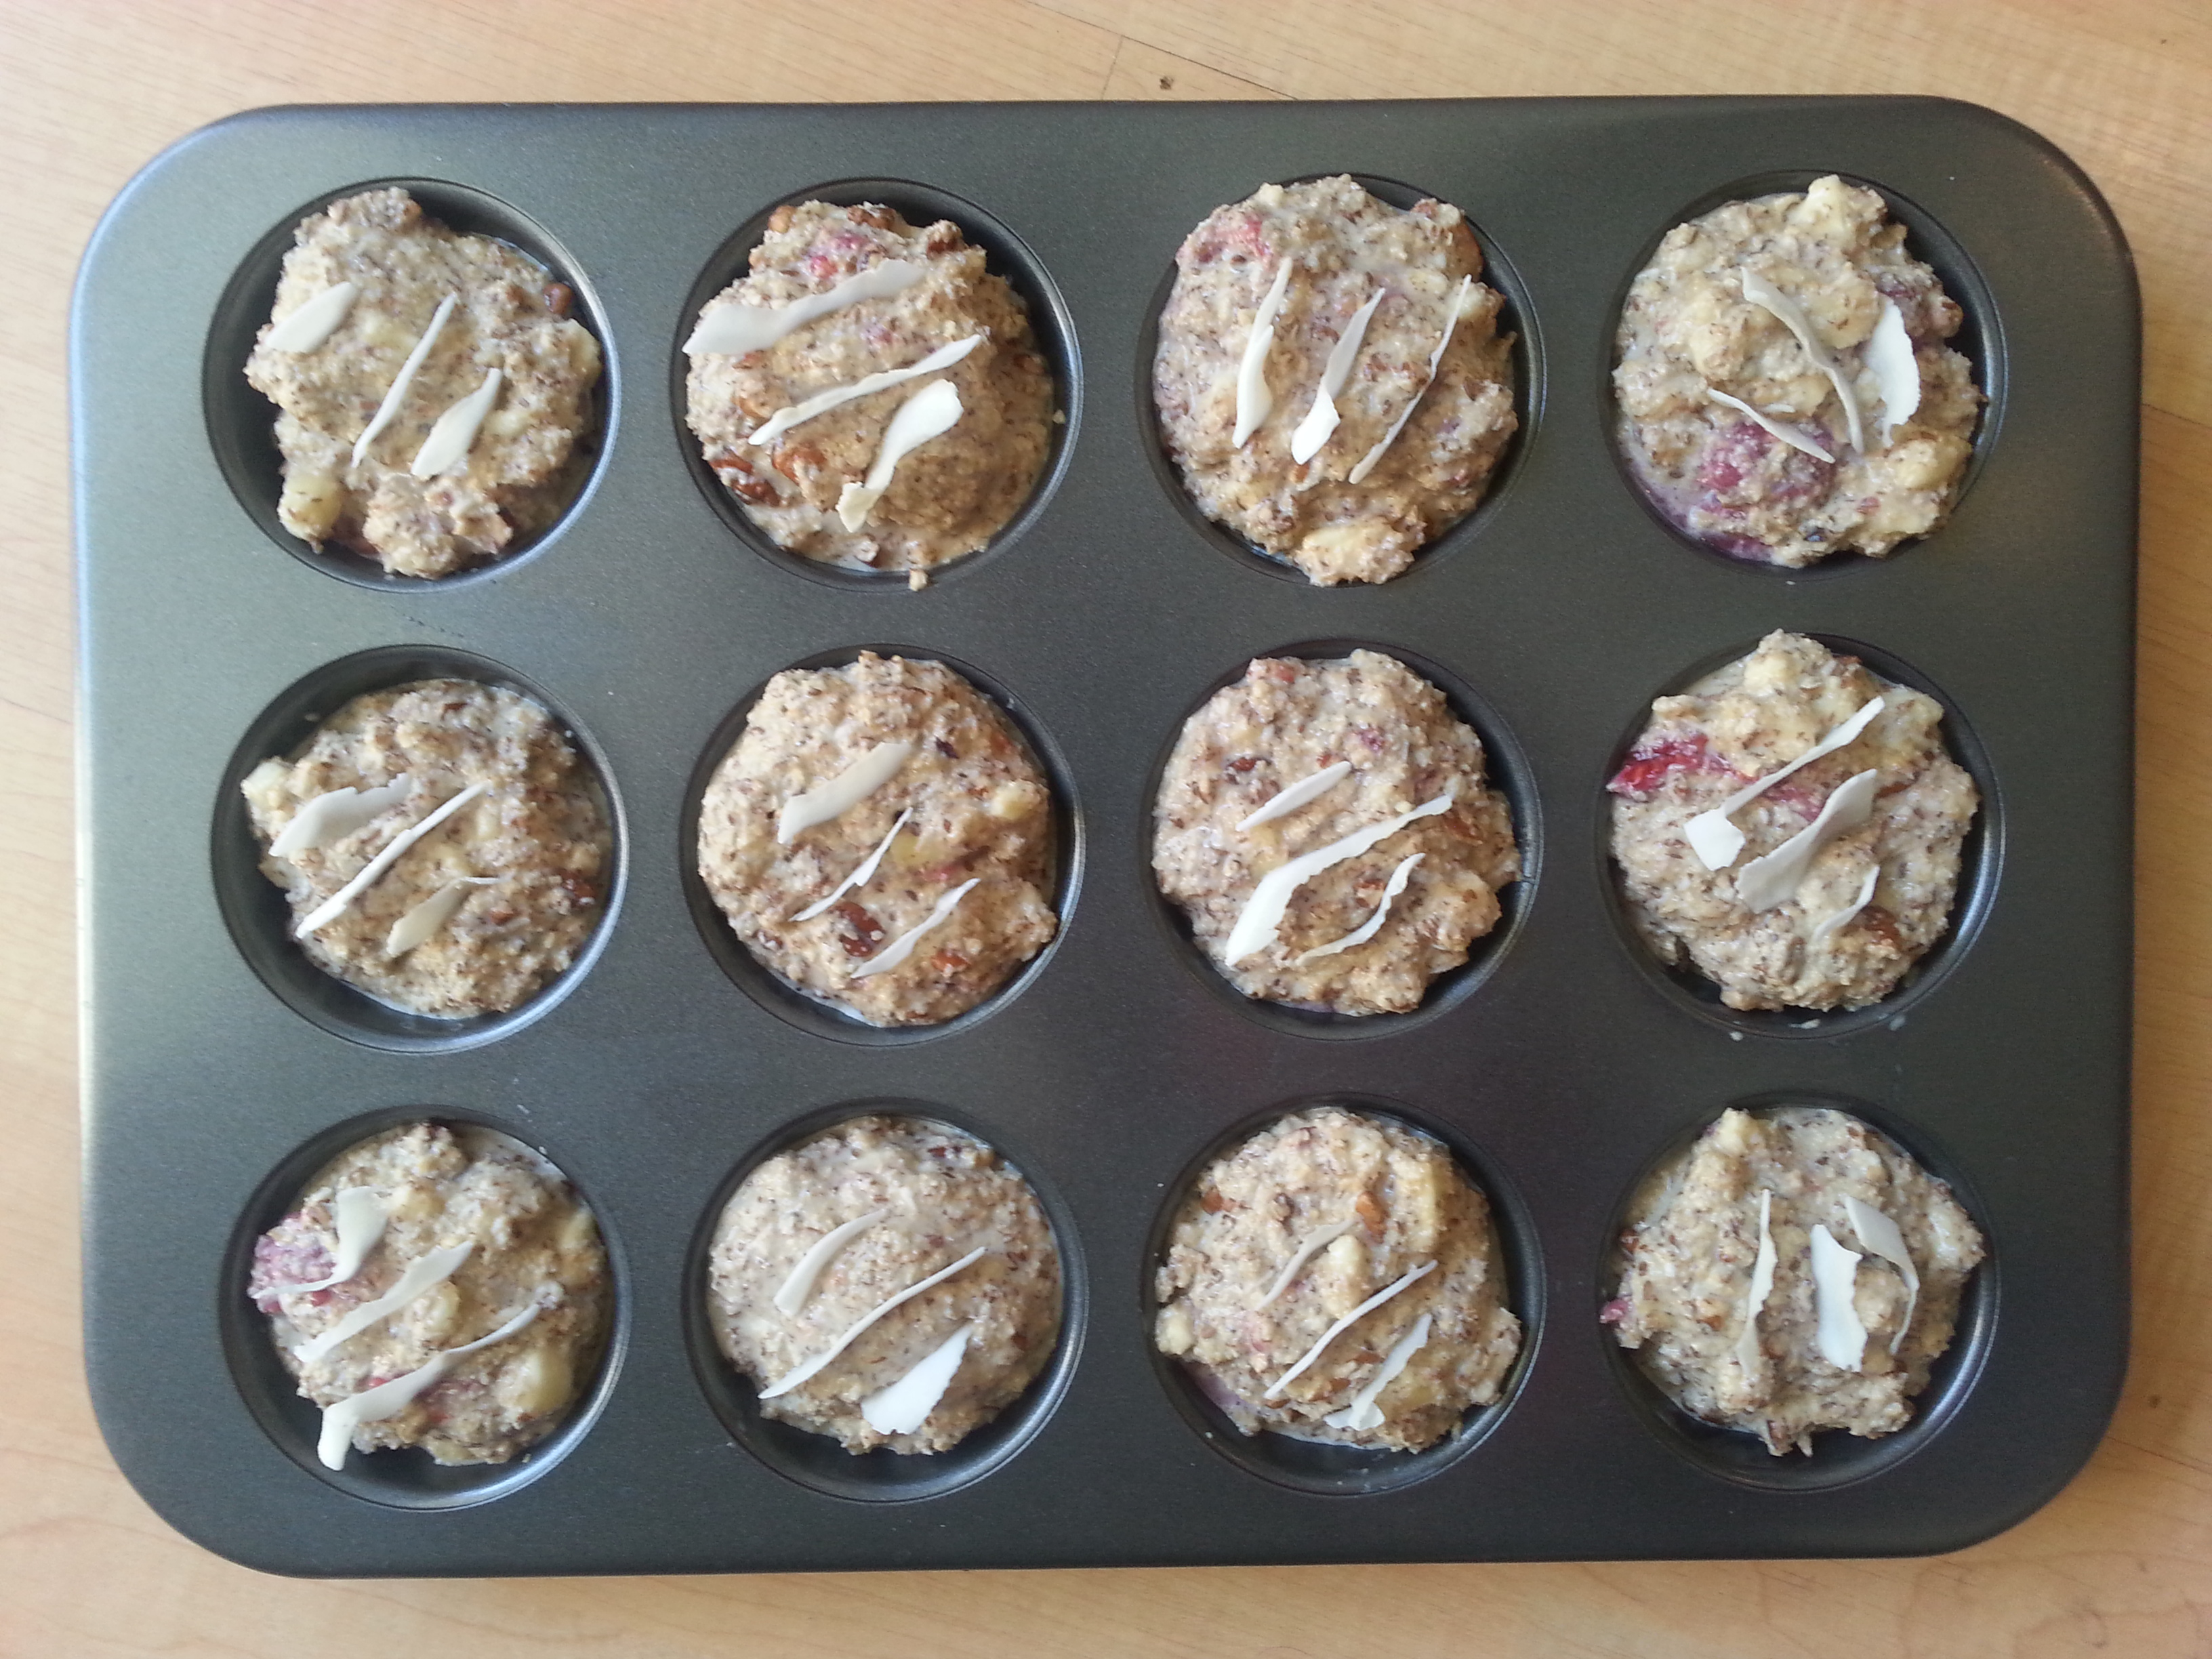 Are Your Muffin Pans Safe Enough for Imaginary Pets?